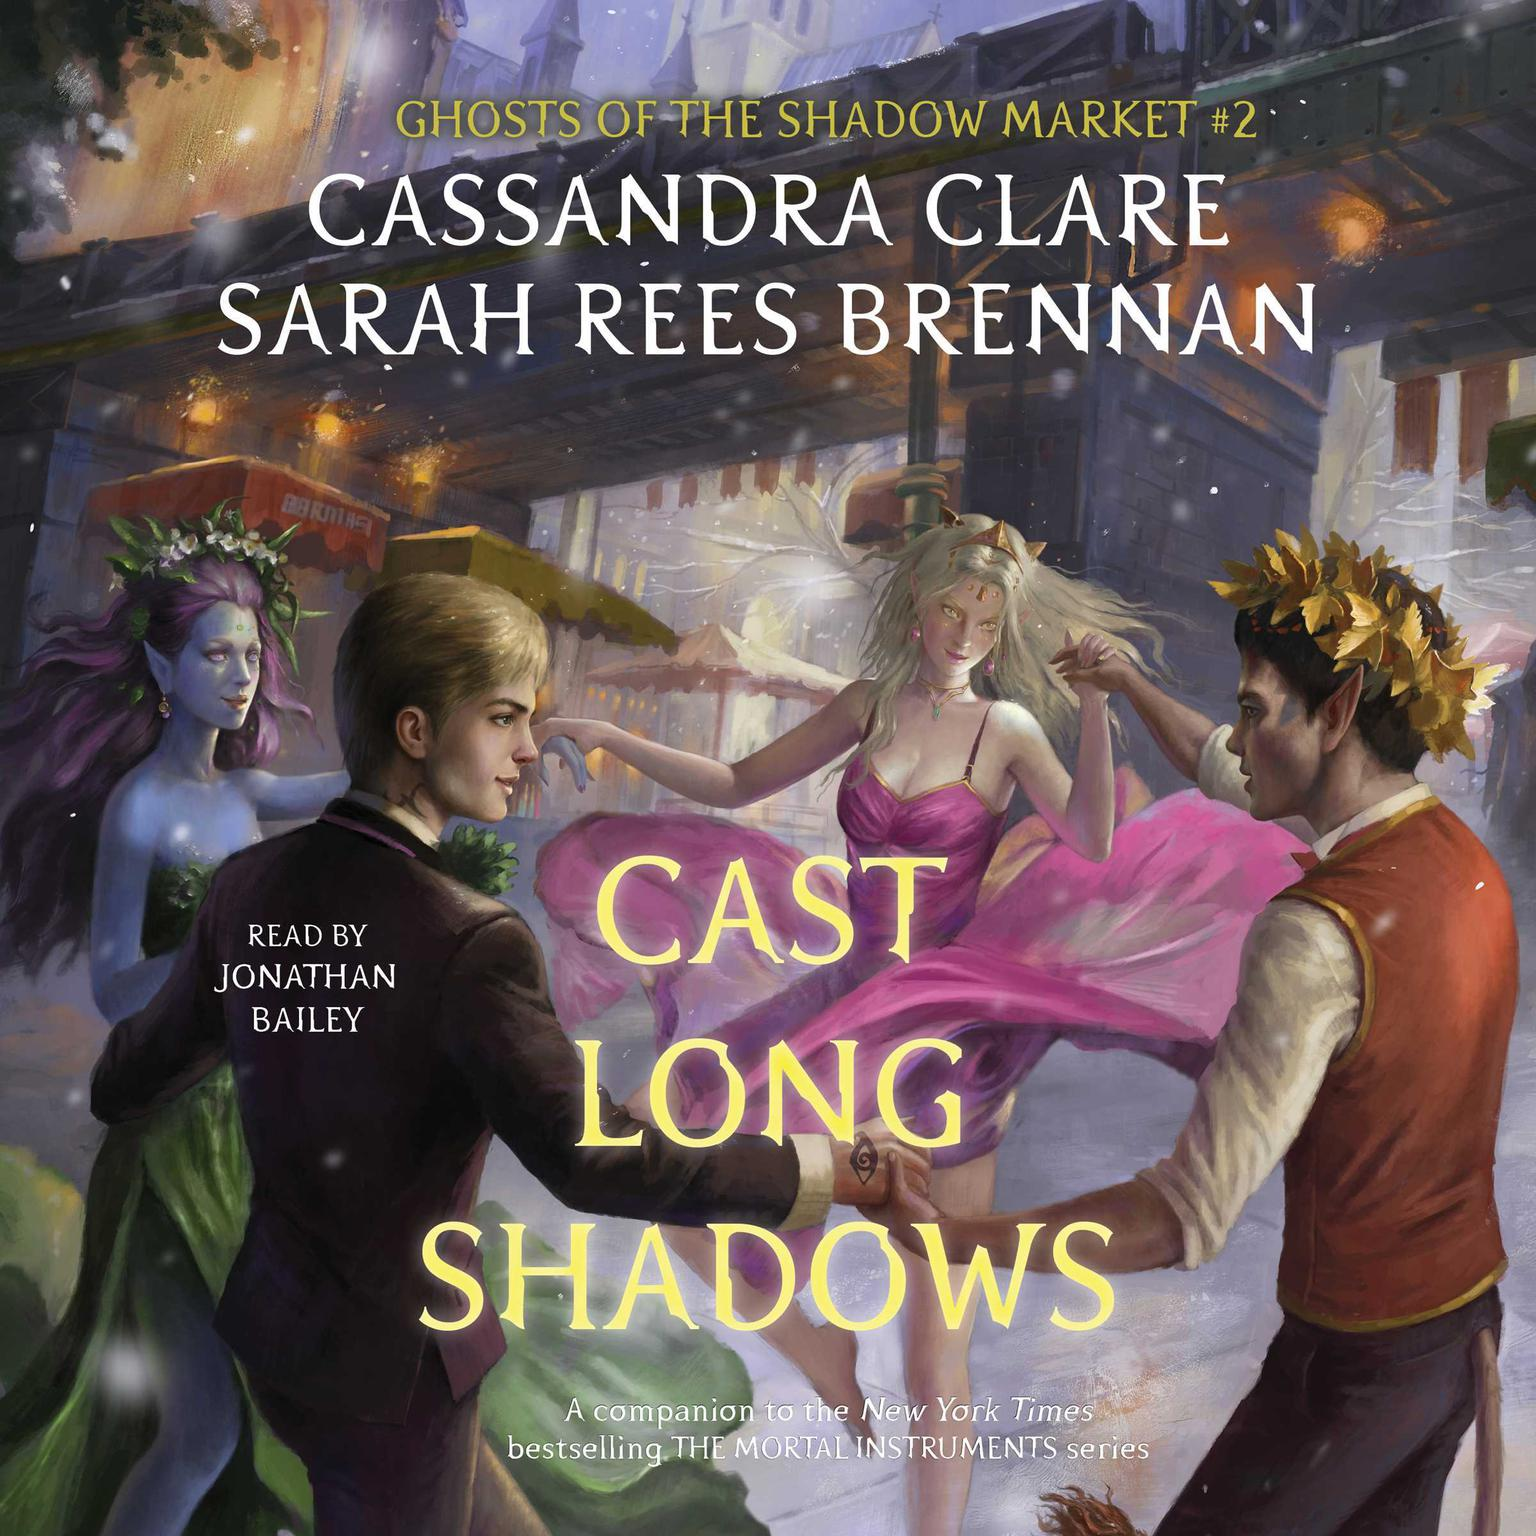 Cast Long Shadows: Ghosts of the Shadow Market Audiobook, by Sarah Rees Brennan